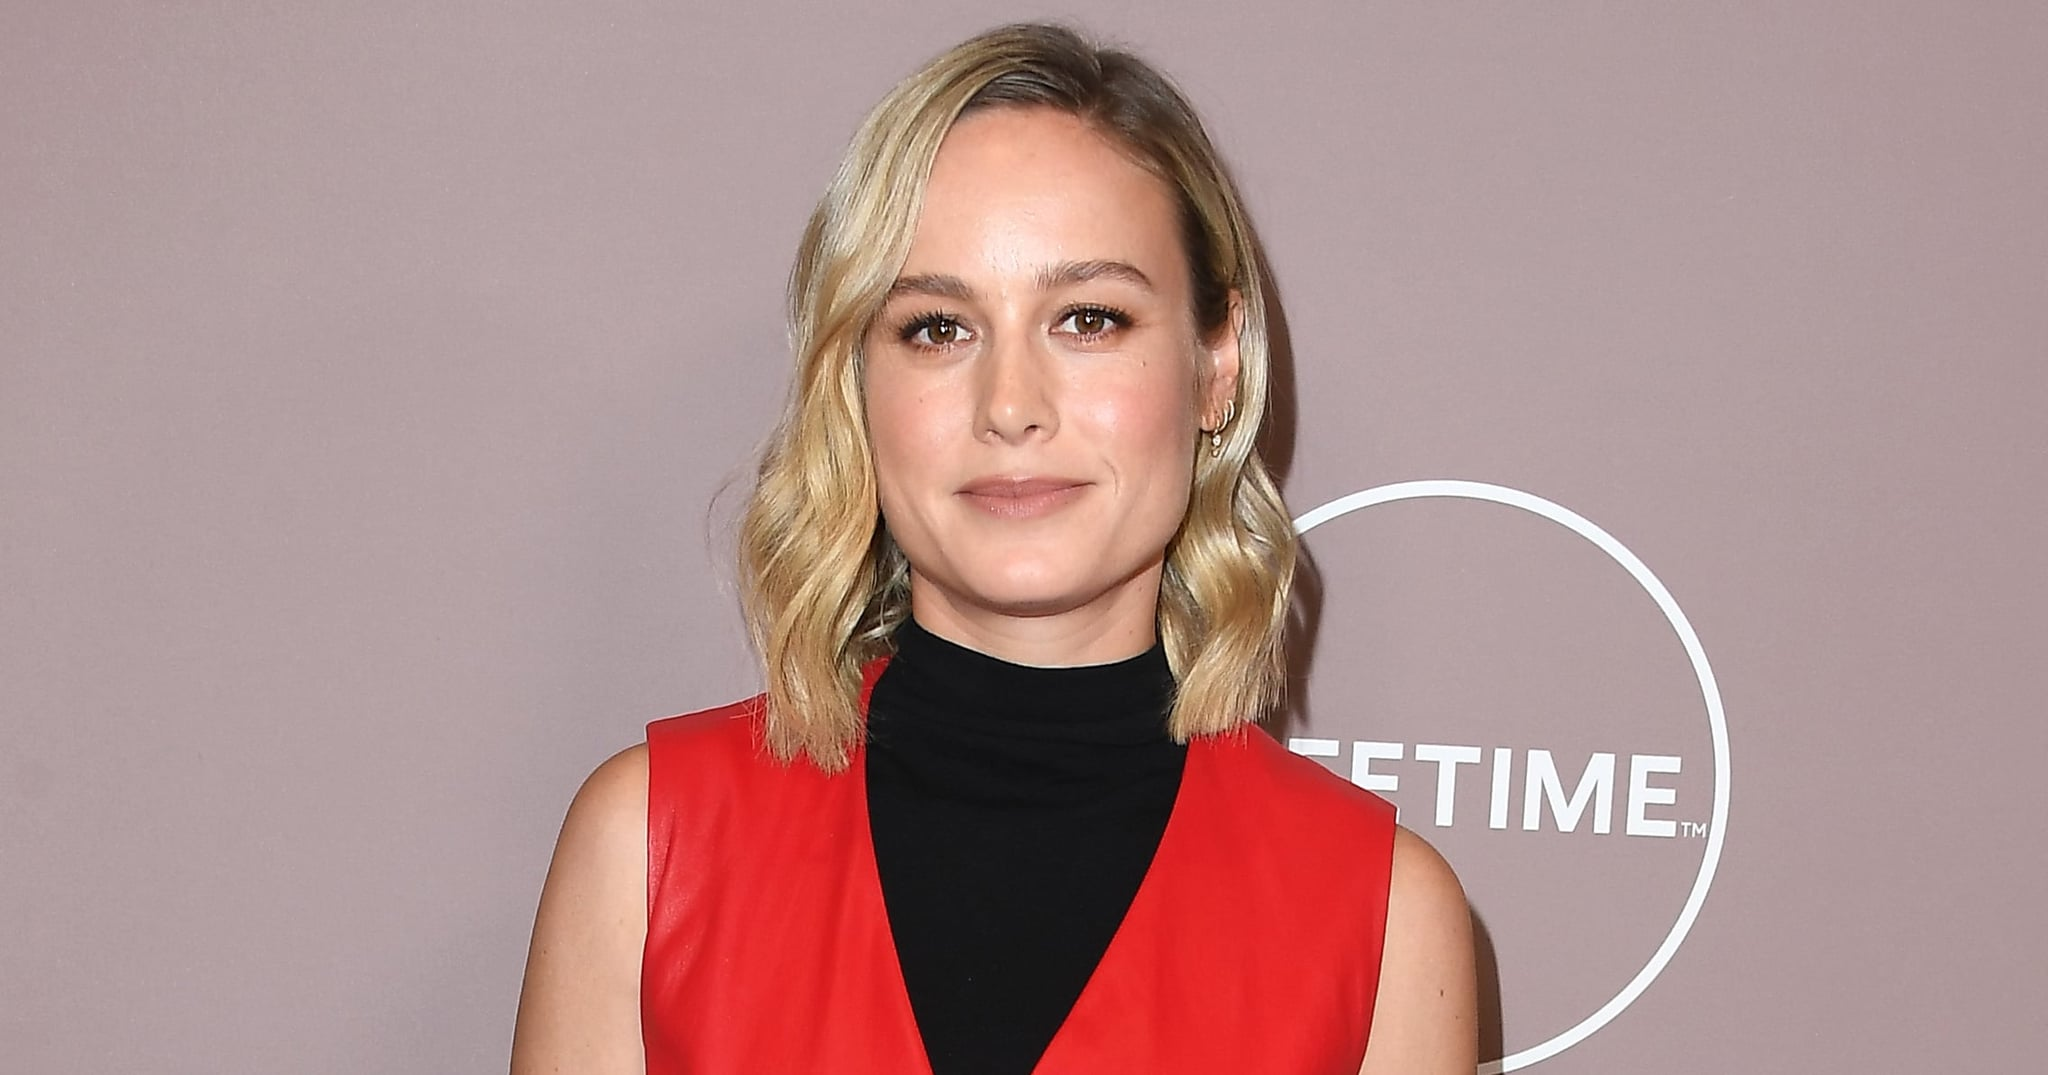 Brie Larson's Reaction to Witnessing a Proposal Is Priceless